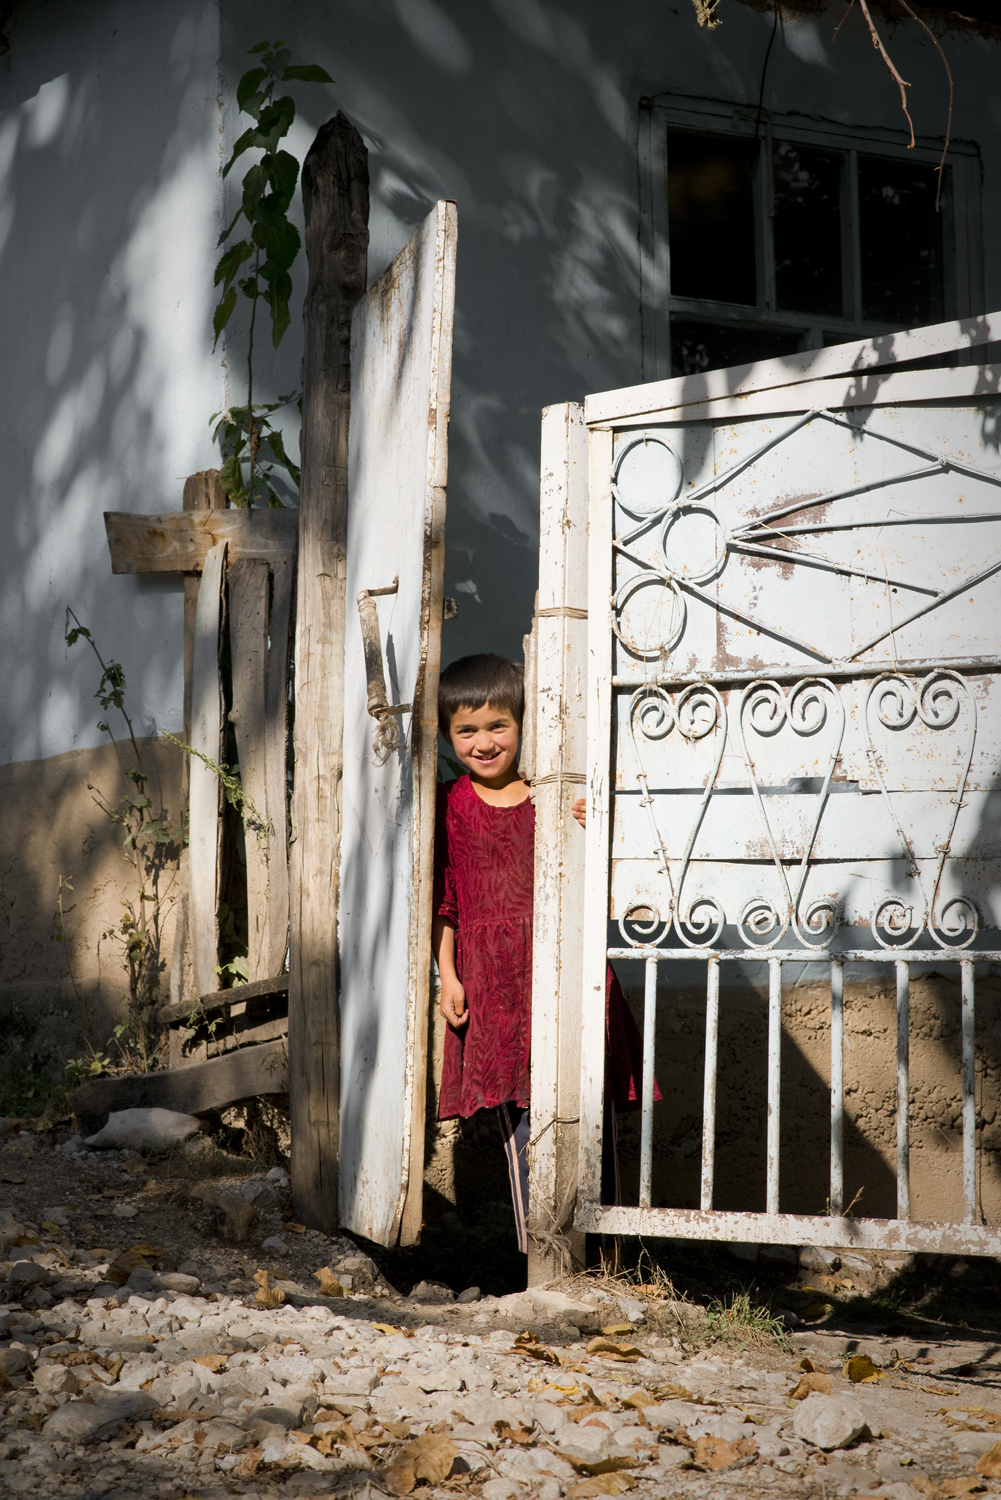 Latifya stands by the door to her home in the mono-ethnic town of Arslanbob in Southern Kyrgyzstan.